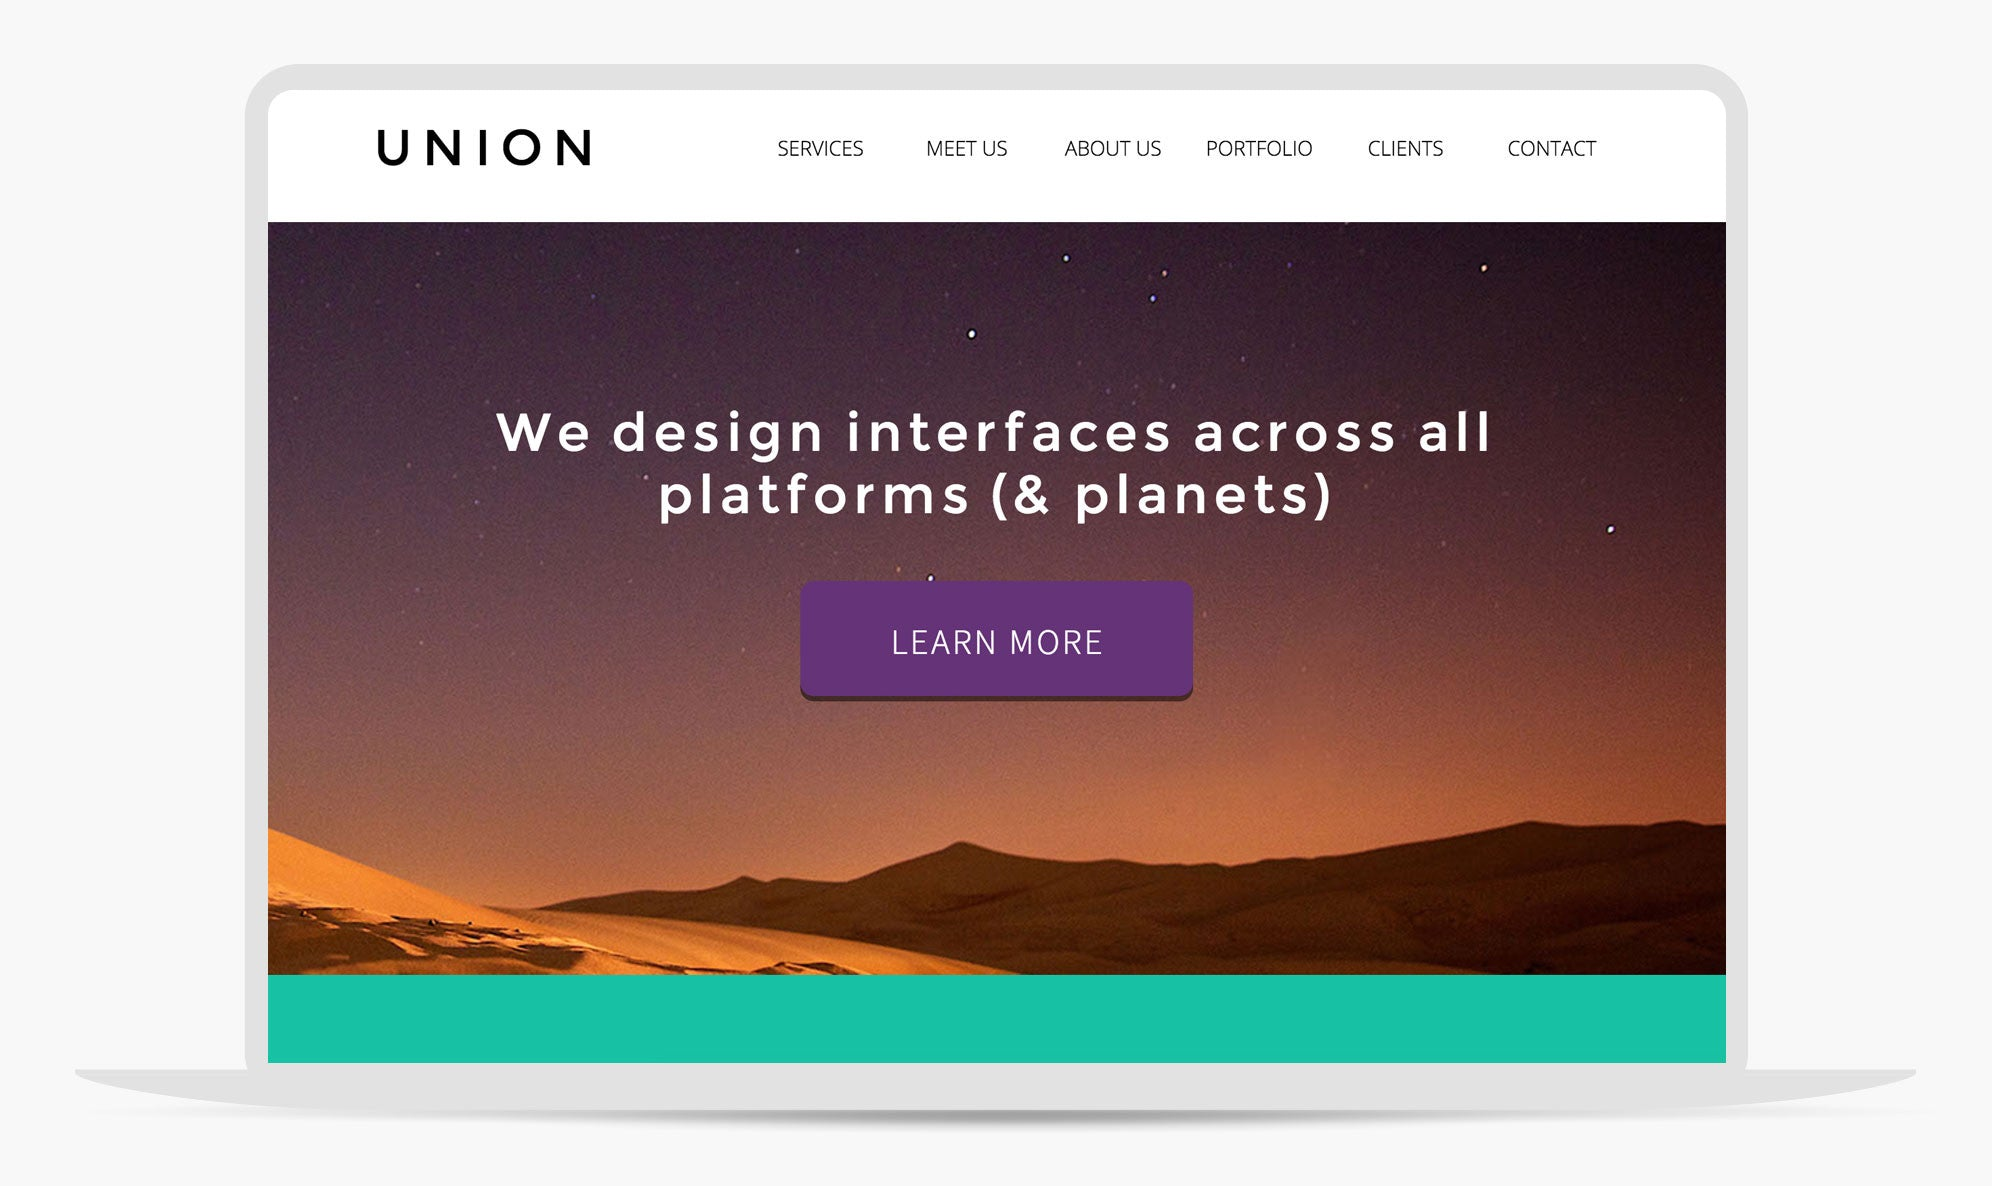 Union adobe muse template by musethemes free download accmission